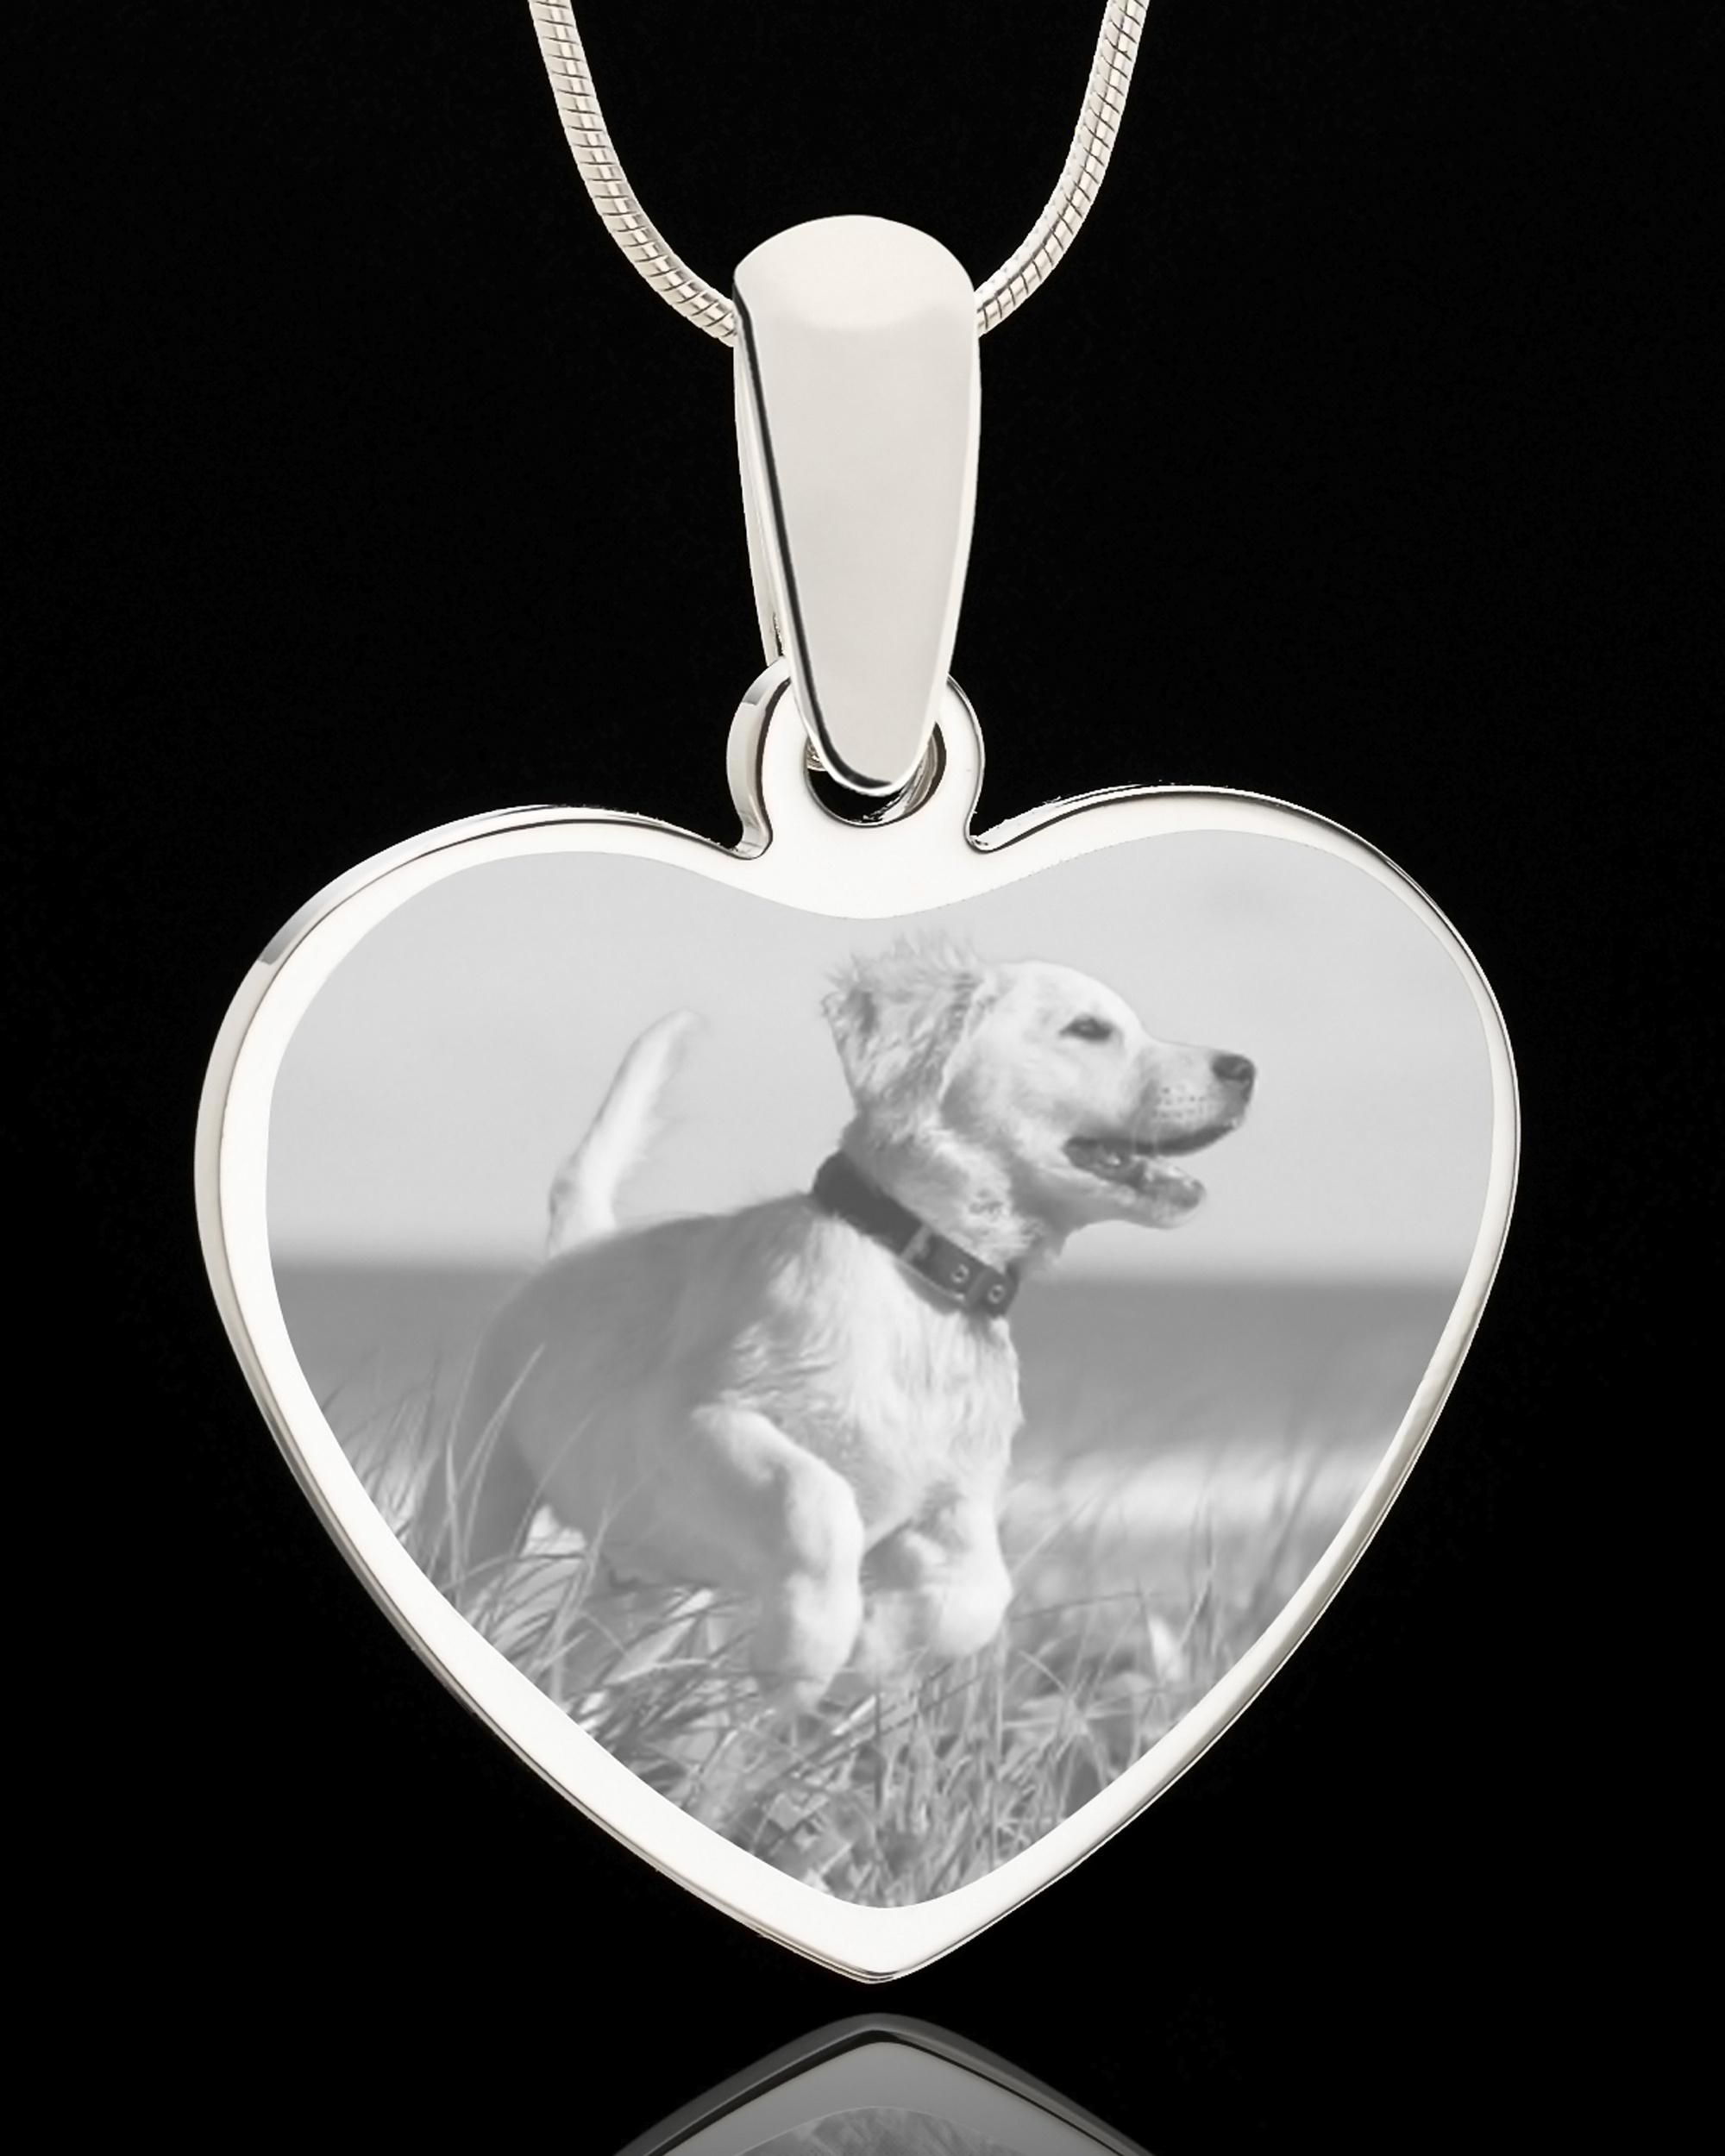 Jewelry Keepsakes81-4985Photo Eng Heart Pet Pendant Stainless.jpg812